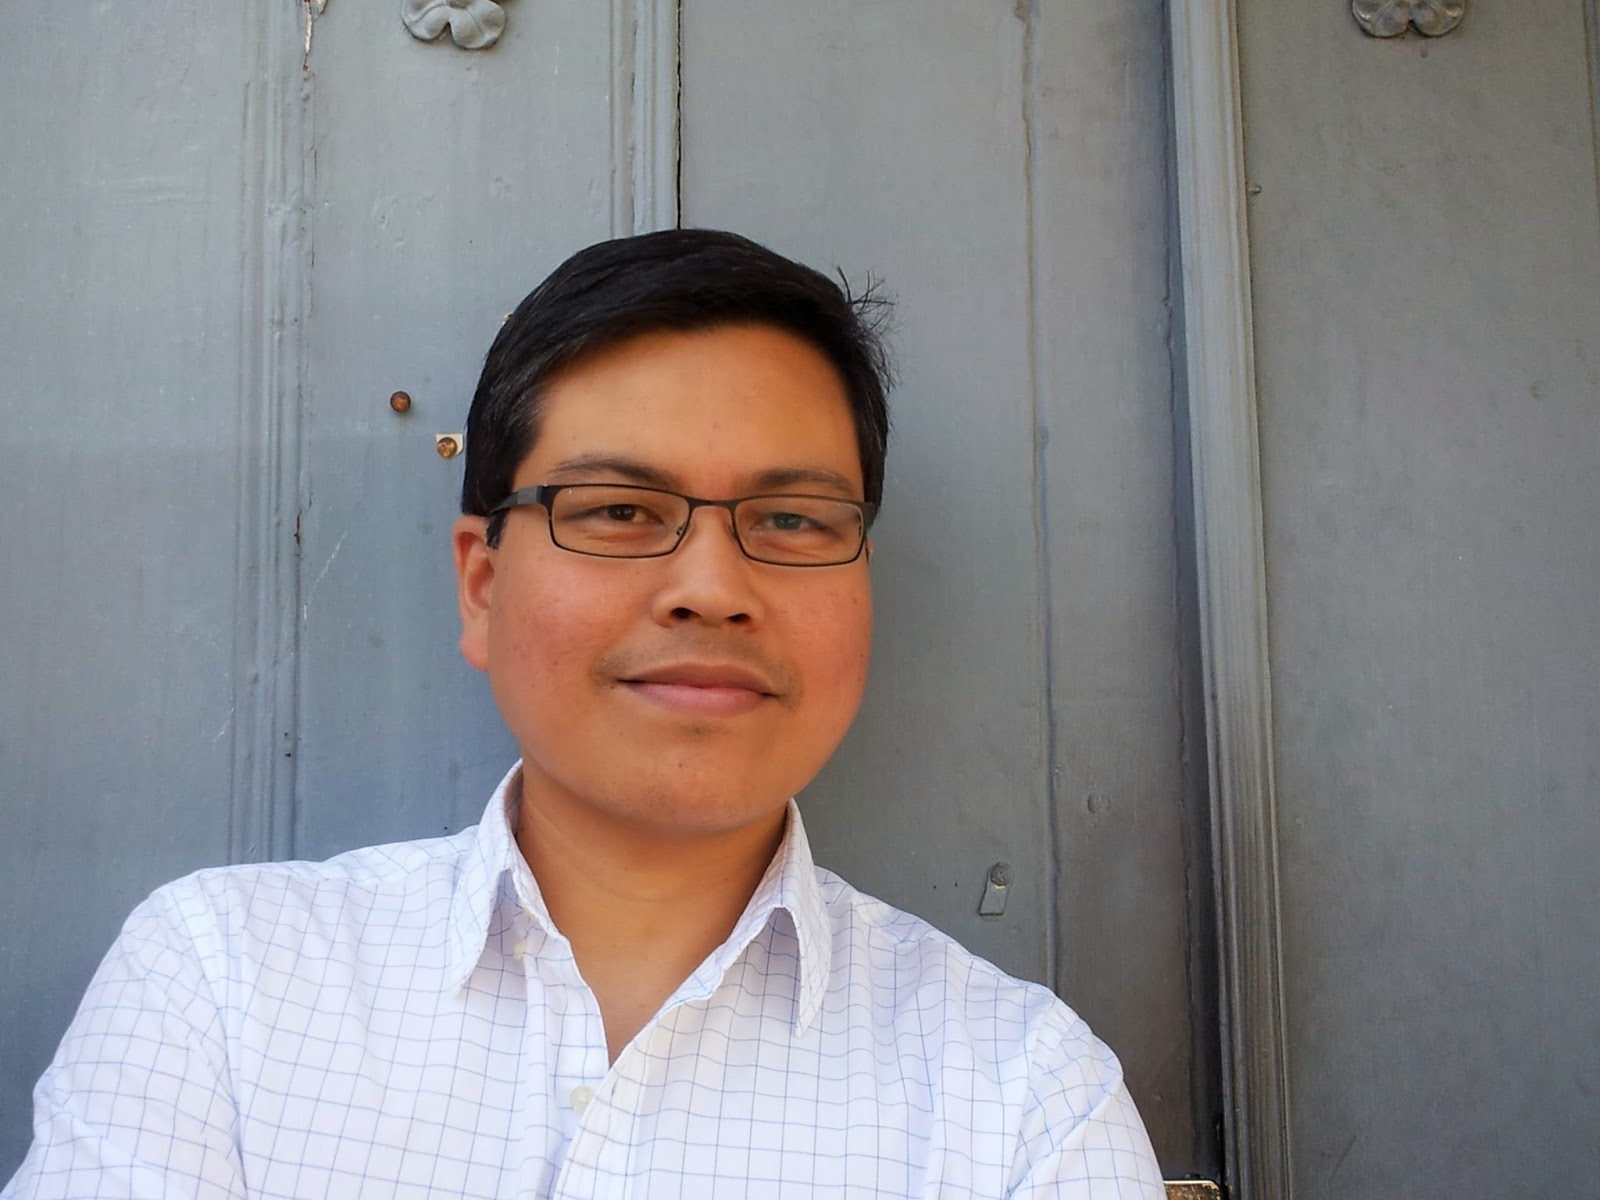 Rick Barot, winner of the UNT Rilke Prize, will give a book reading and Q&A at the University of North Texas as part of the spring Visiting Writers Series. Photo provided by Rick Barot.